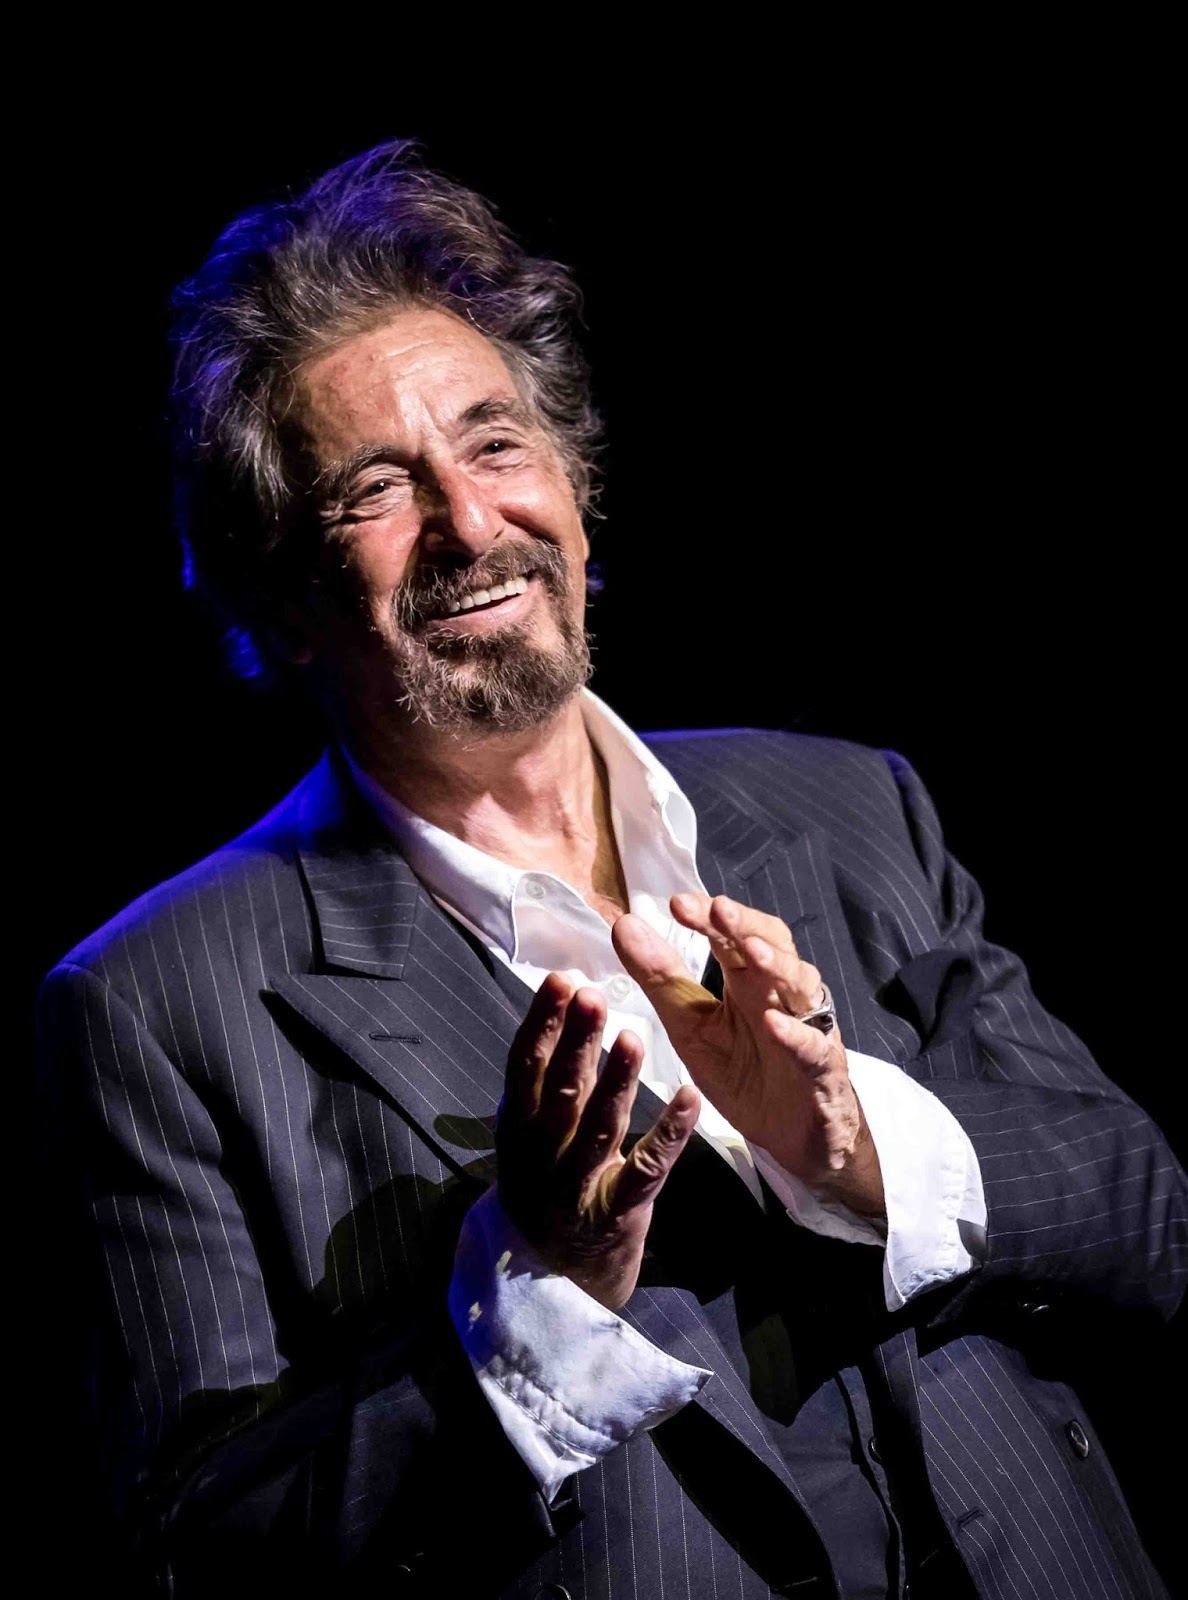 Times square gossip al pacino an evening with al pacino the venetian vegas m4hsunfo Gallery